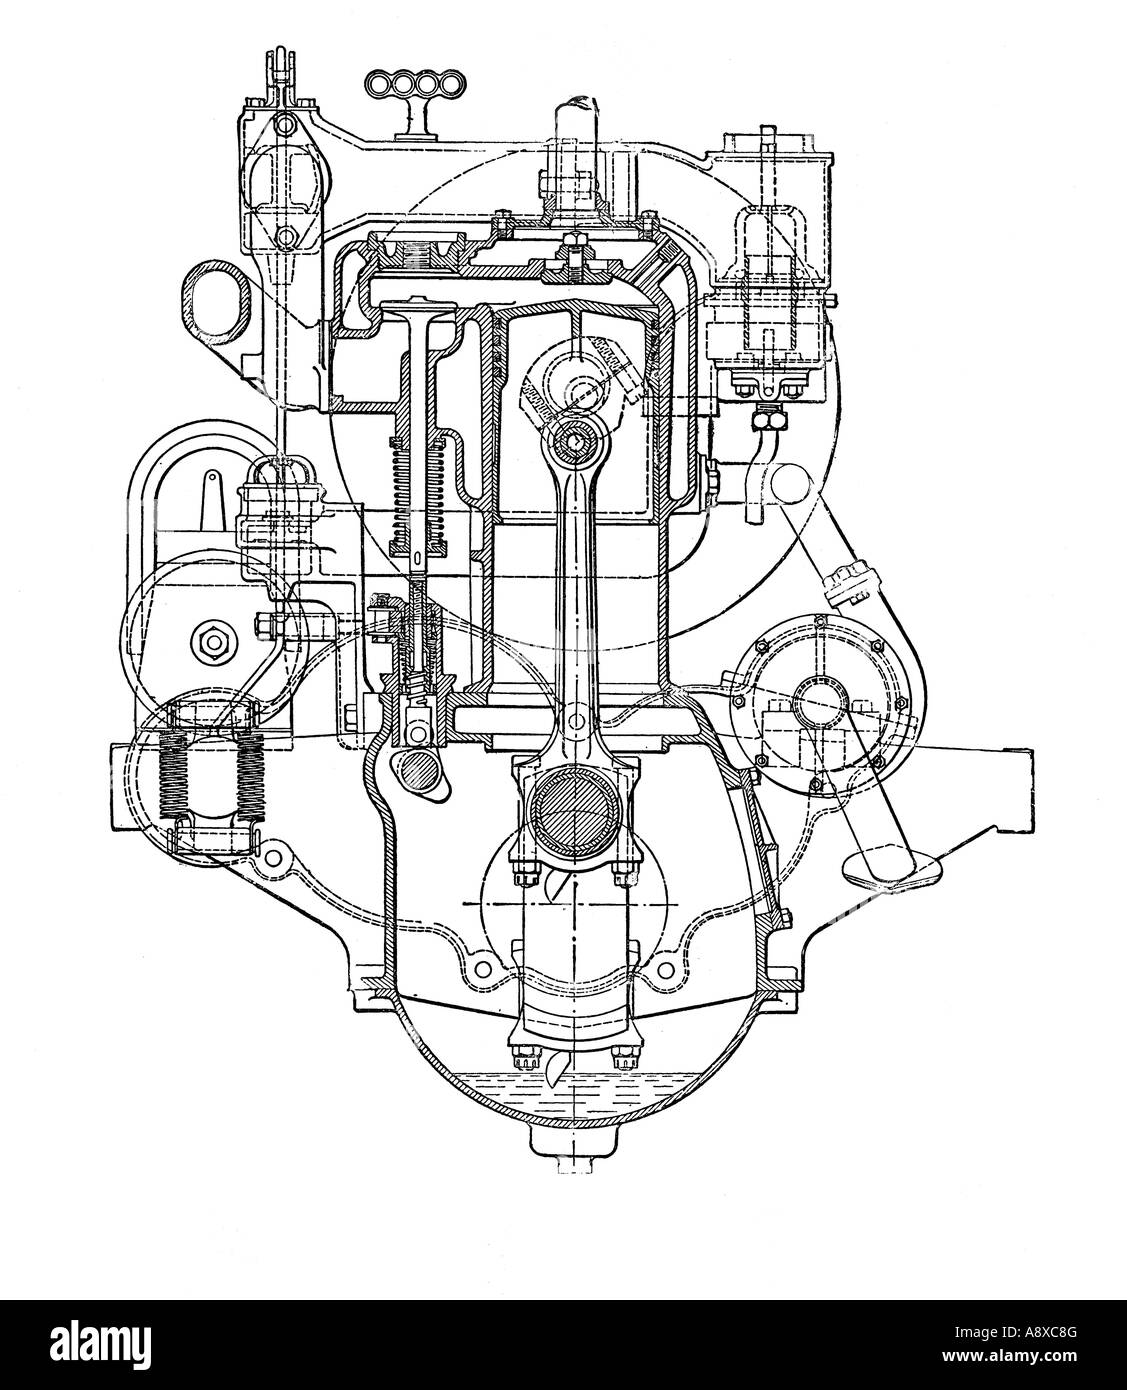 Cross Section Diagram Of Siddeley Four Cylinder Petrol Engine Stock Photo  12190623